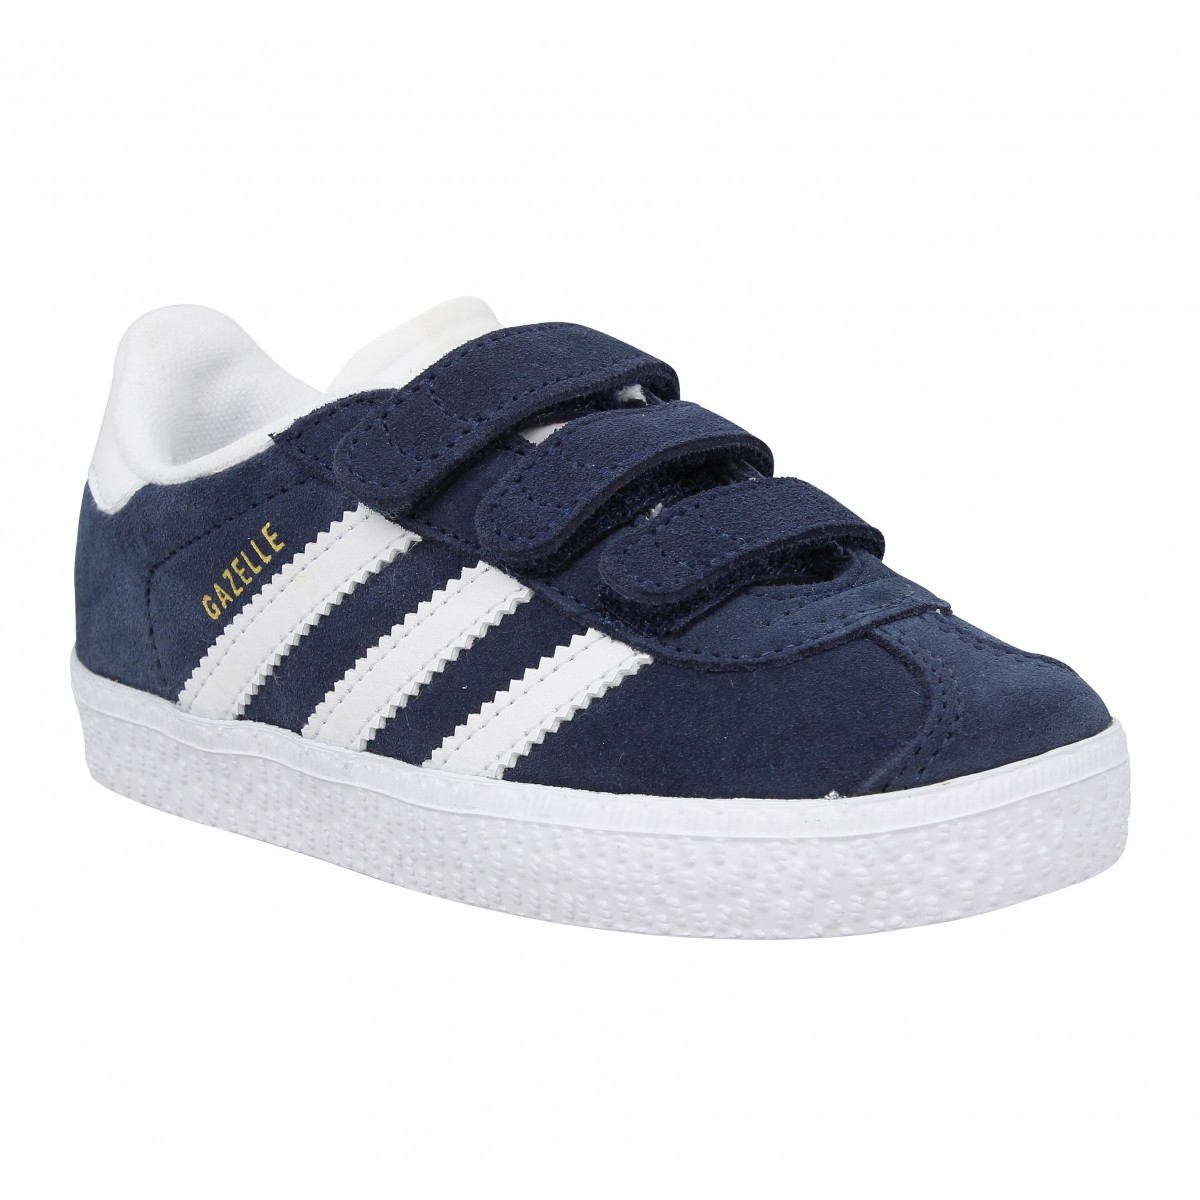 Baskets ADIDAS Gazelle velours Enfant Marine